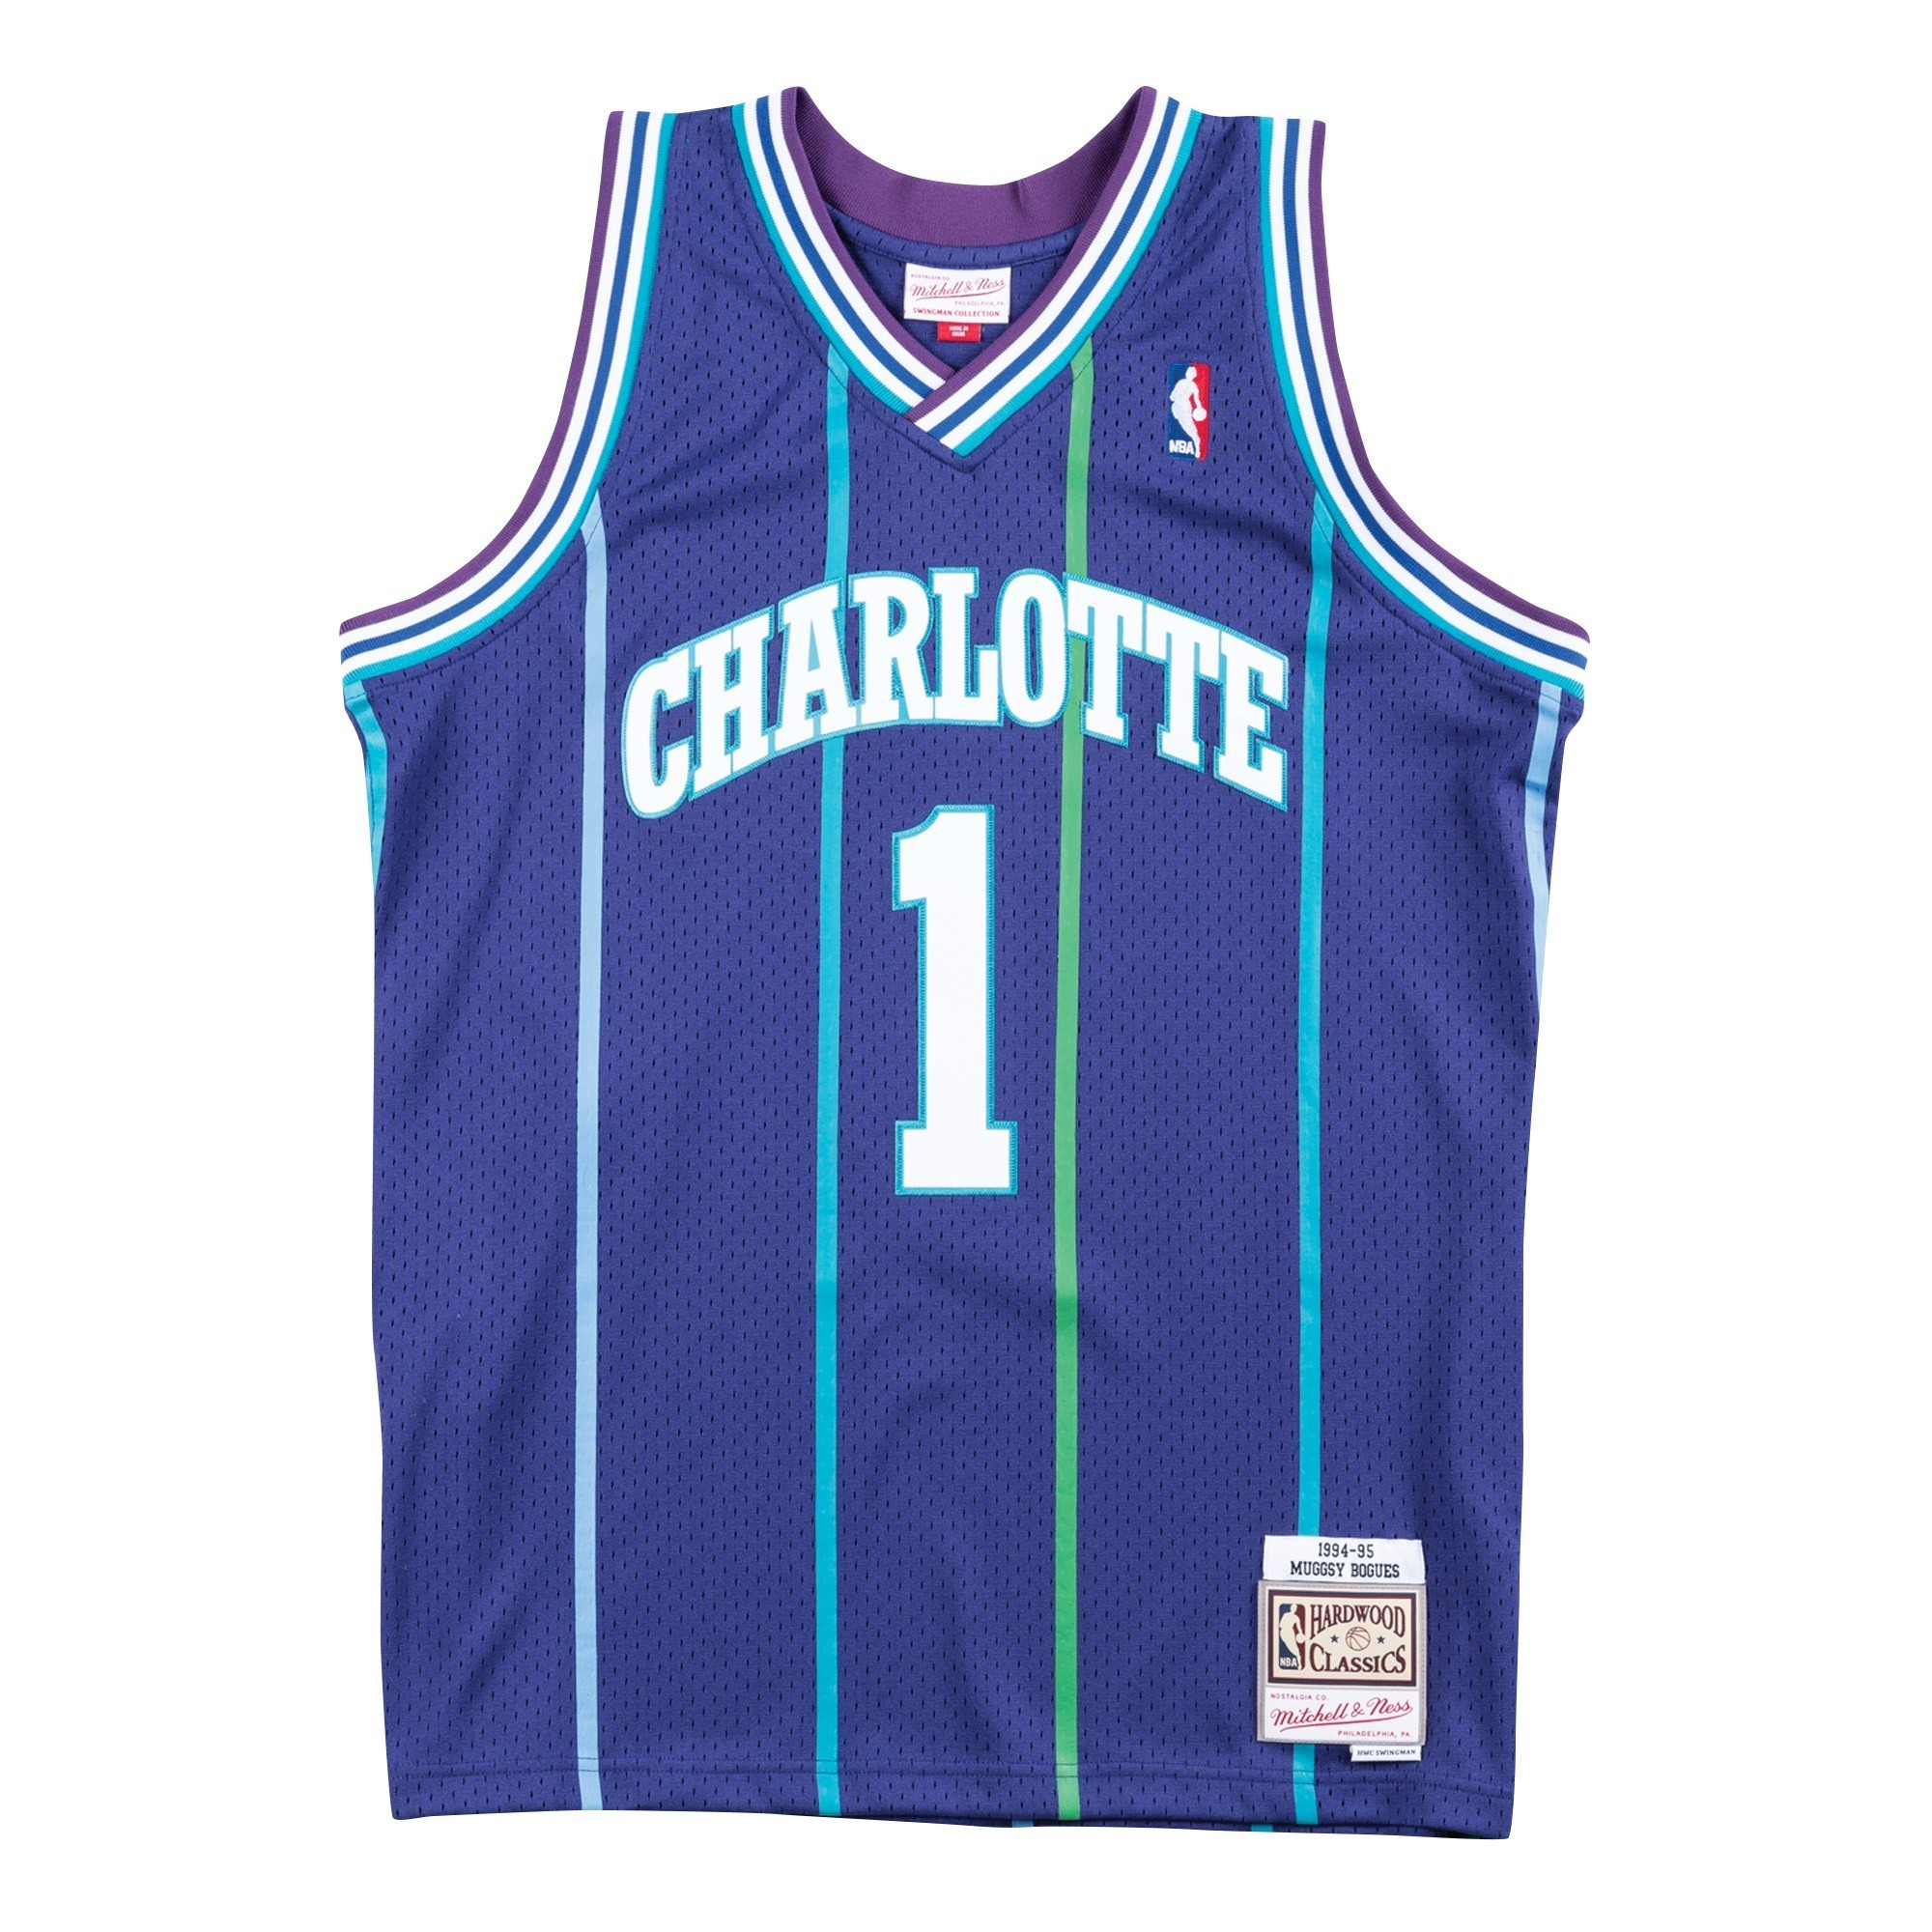 c637796ff266 Details about Muggsy Bogues Charlotte Hornets Mitchell   Ness NBA Swingman  94-95 Jersey